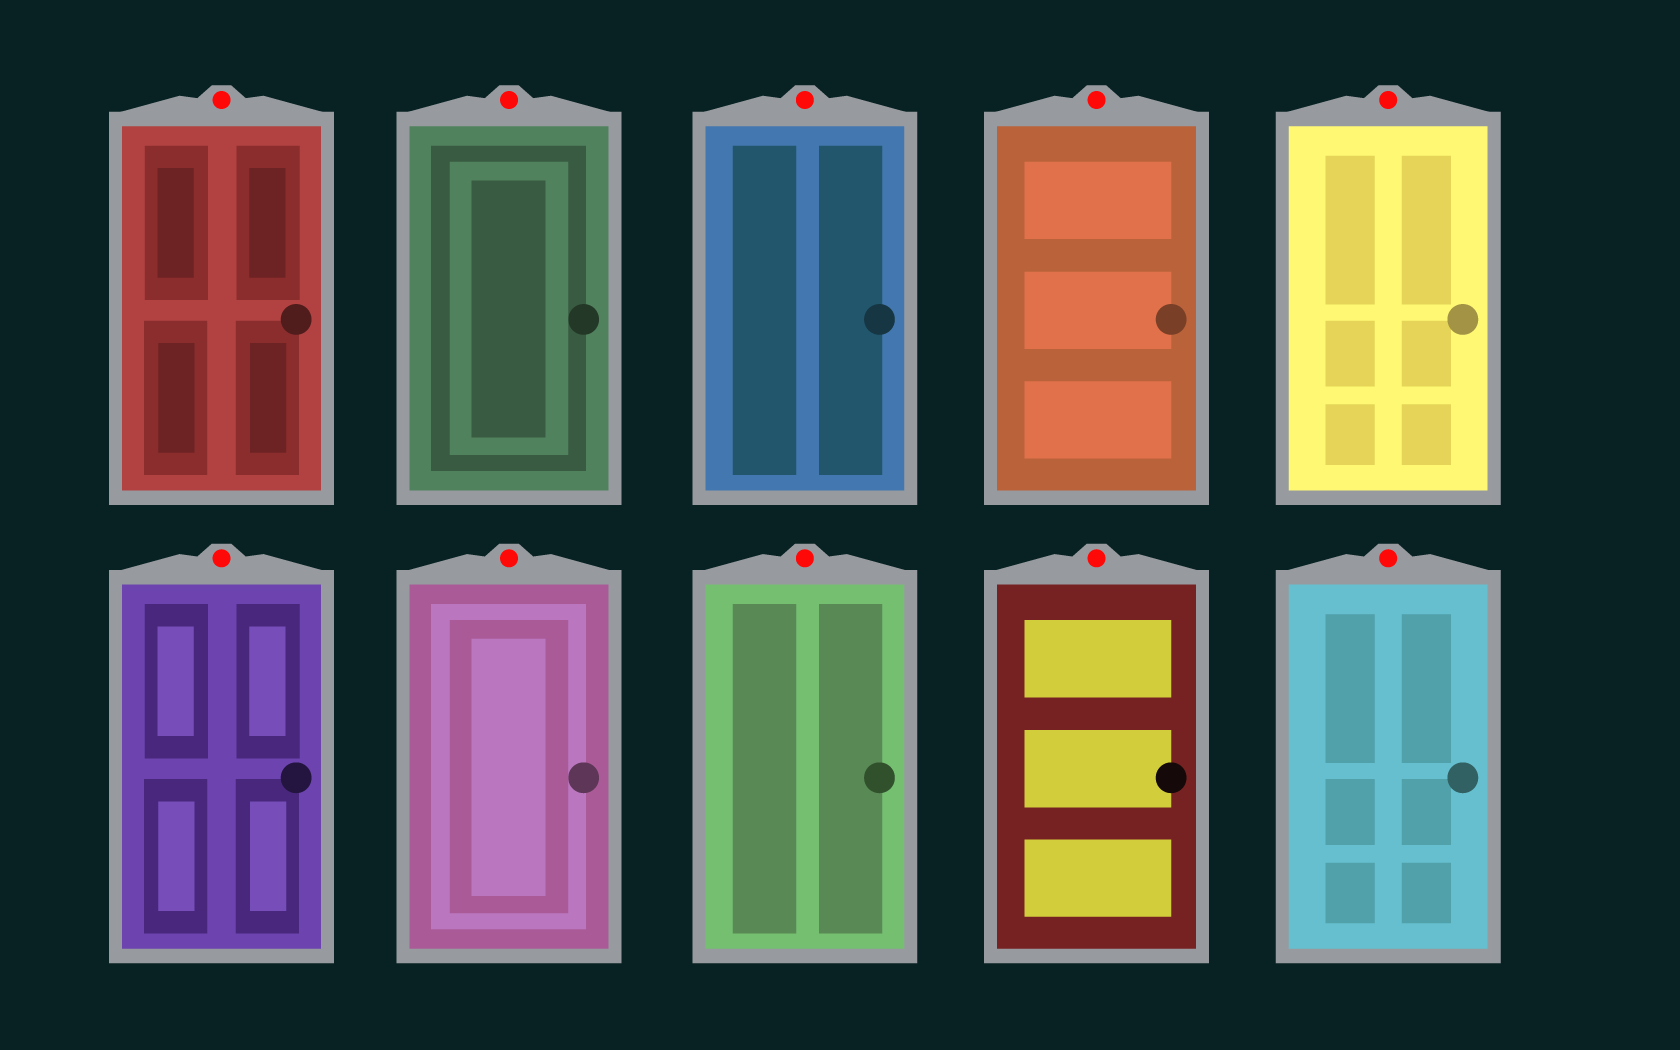 Monsters Inc Moving Doors Animation On Behance